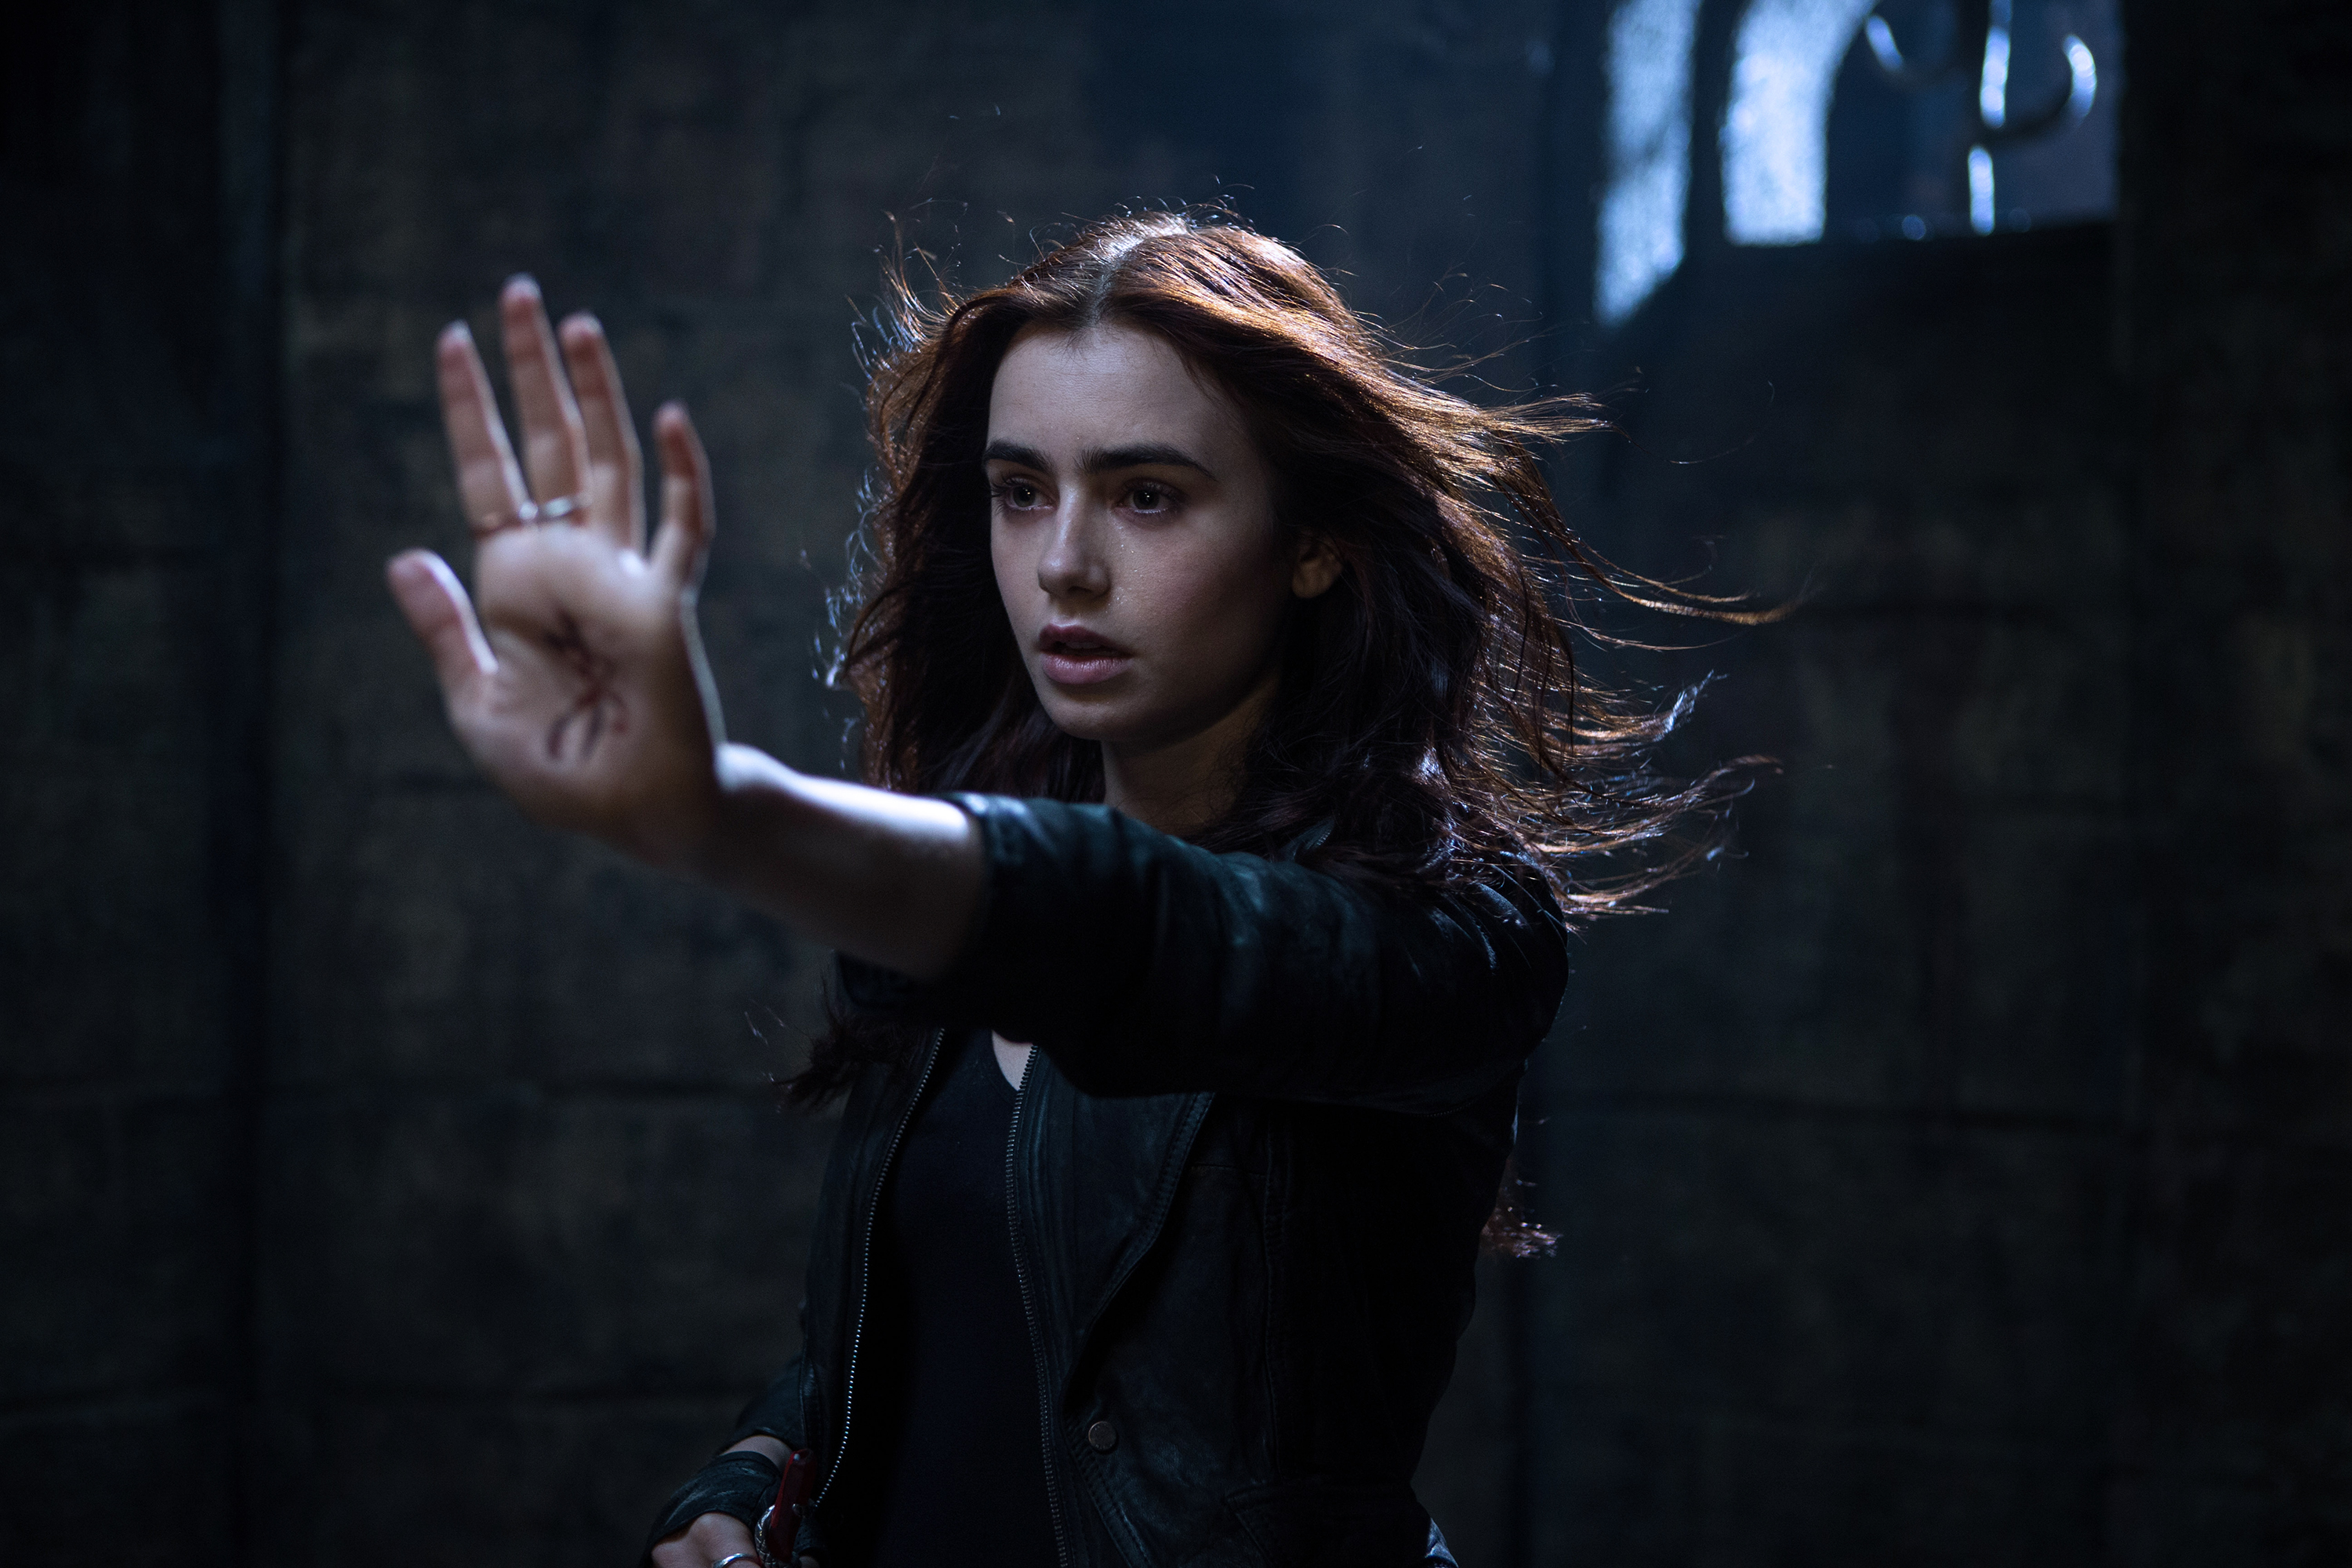 The Mortal Instruments City of Bones is a 2013 urban fantasy actionadventure film based on the first book of The Mortal Instruments series by Cassandra Clare